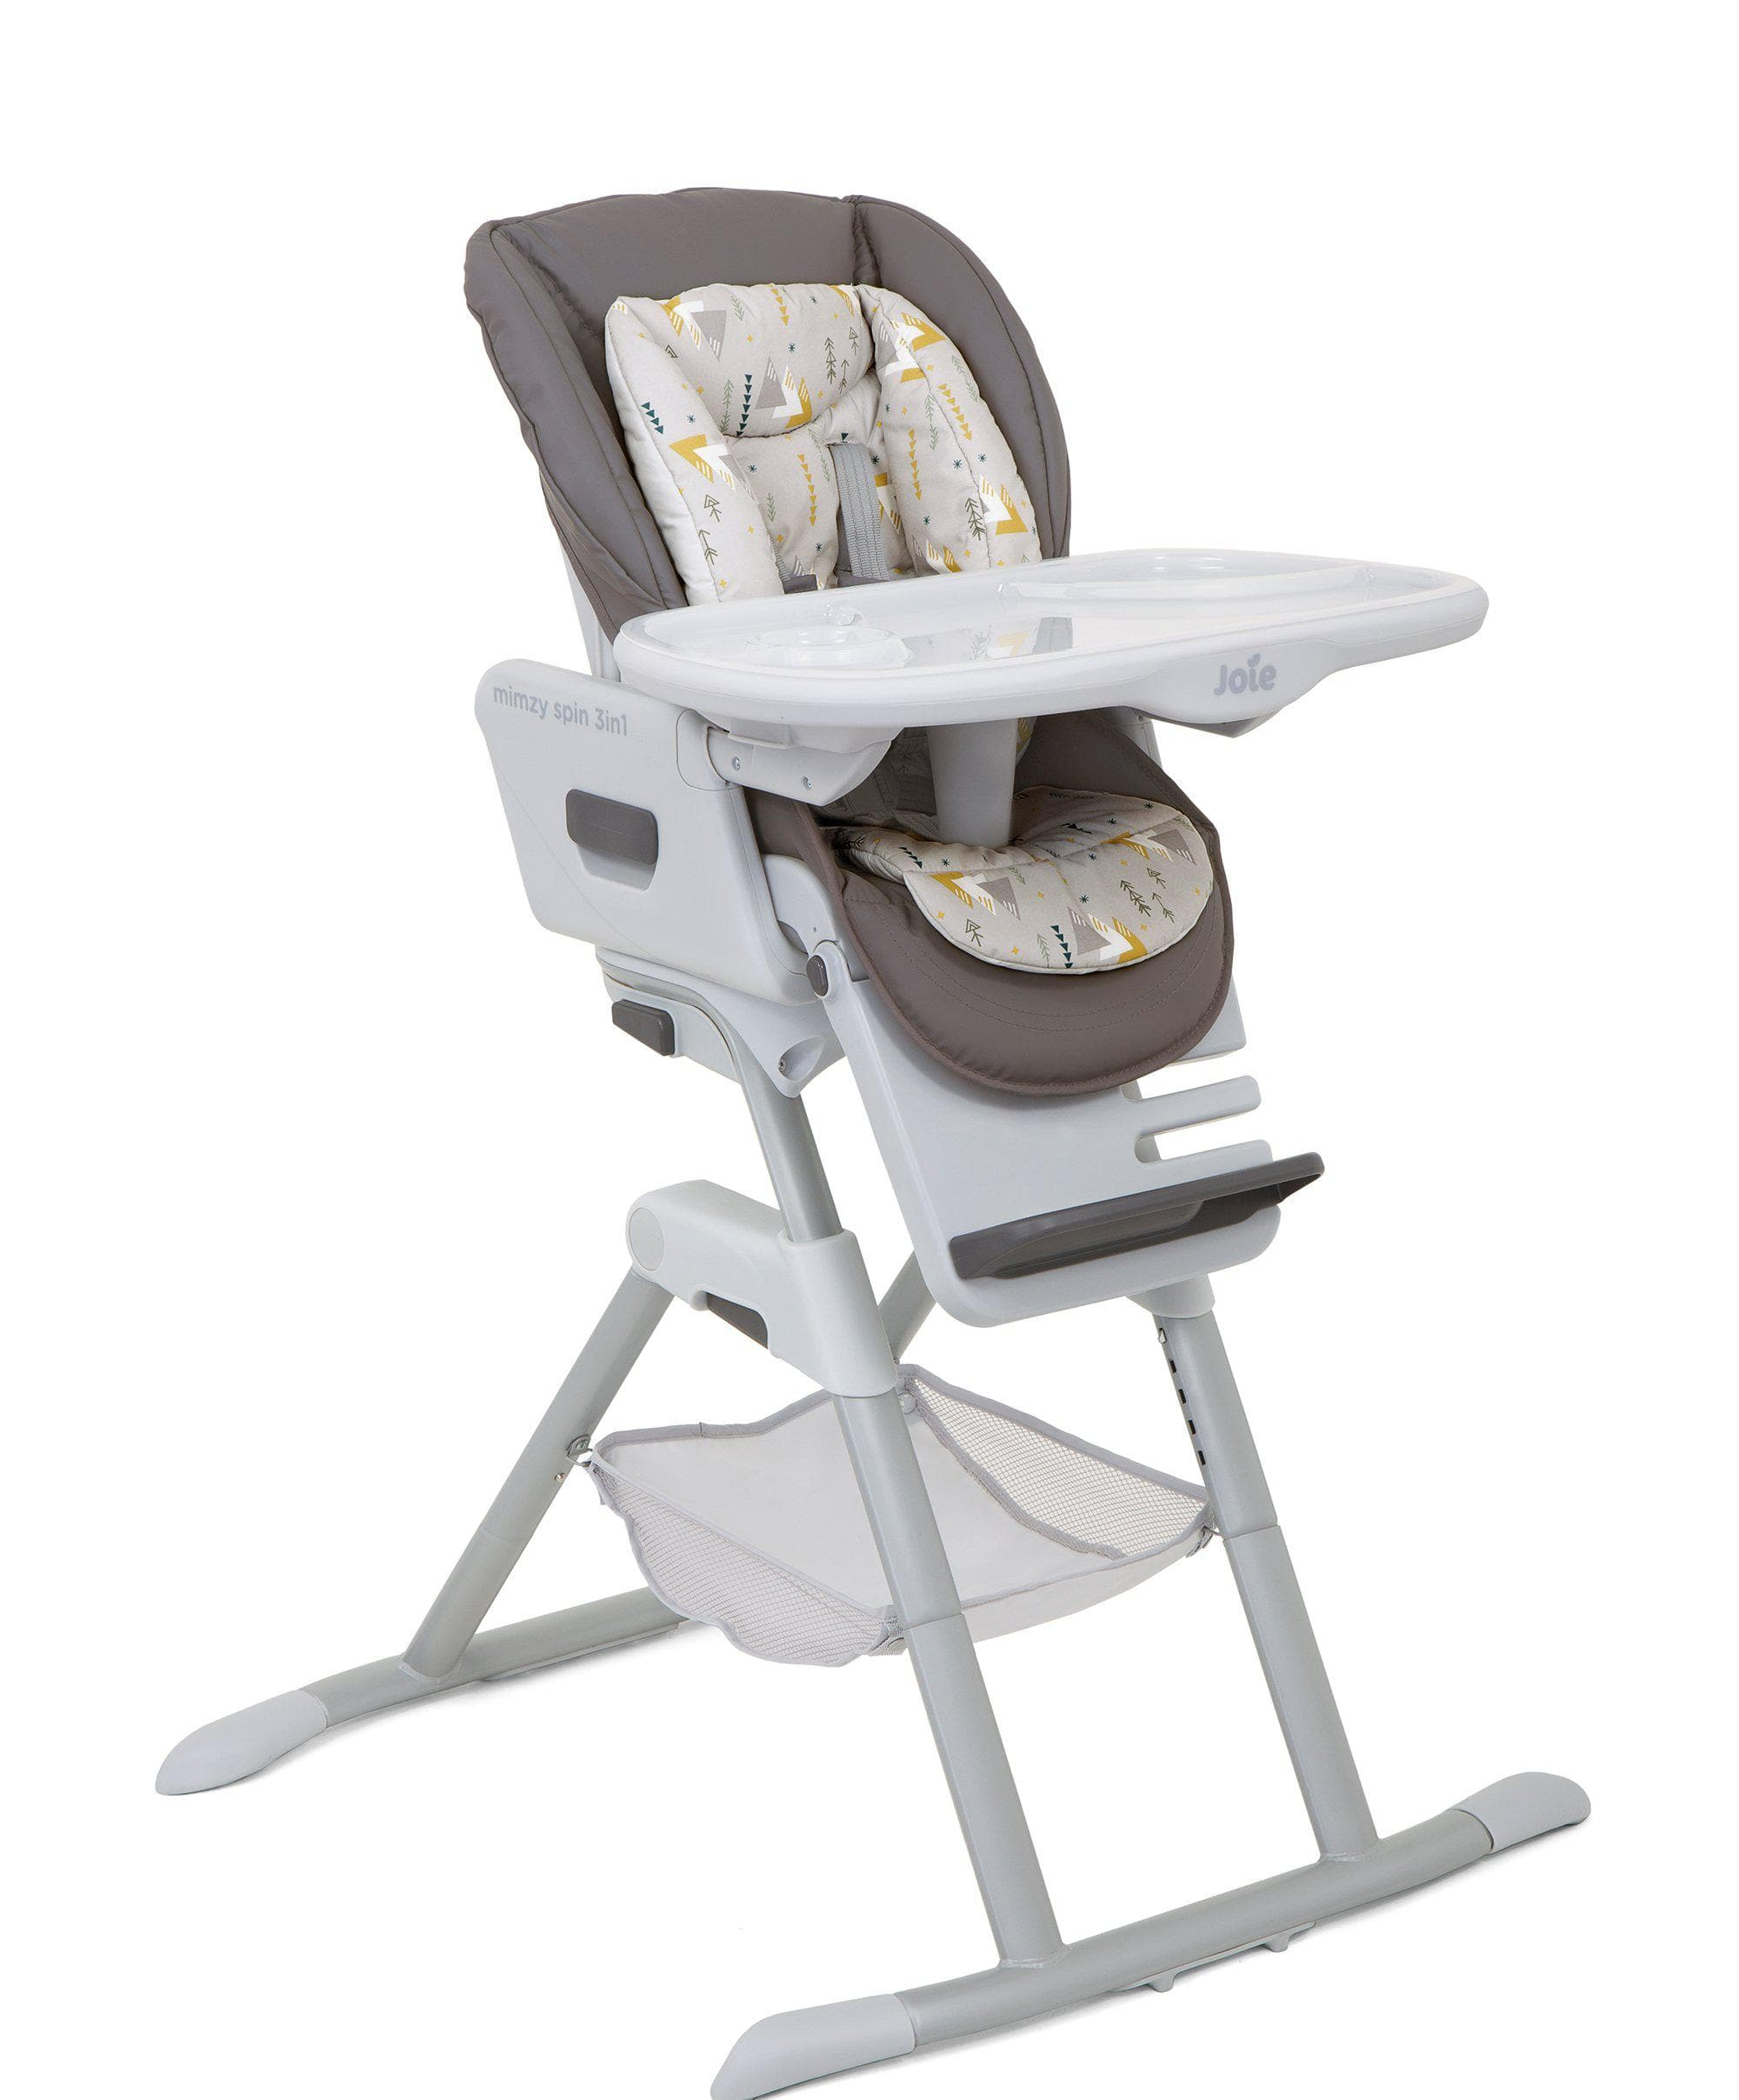 Joie Mimzy Spin 3 in 1 Highchair - Geometric Mountains